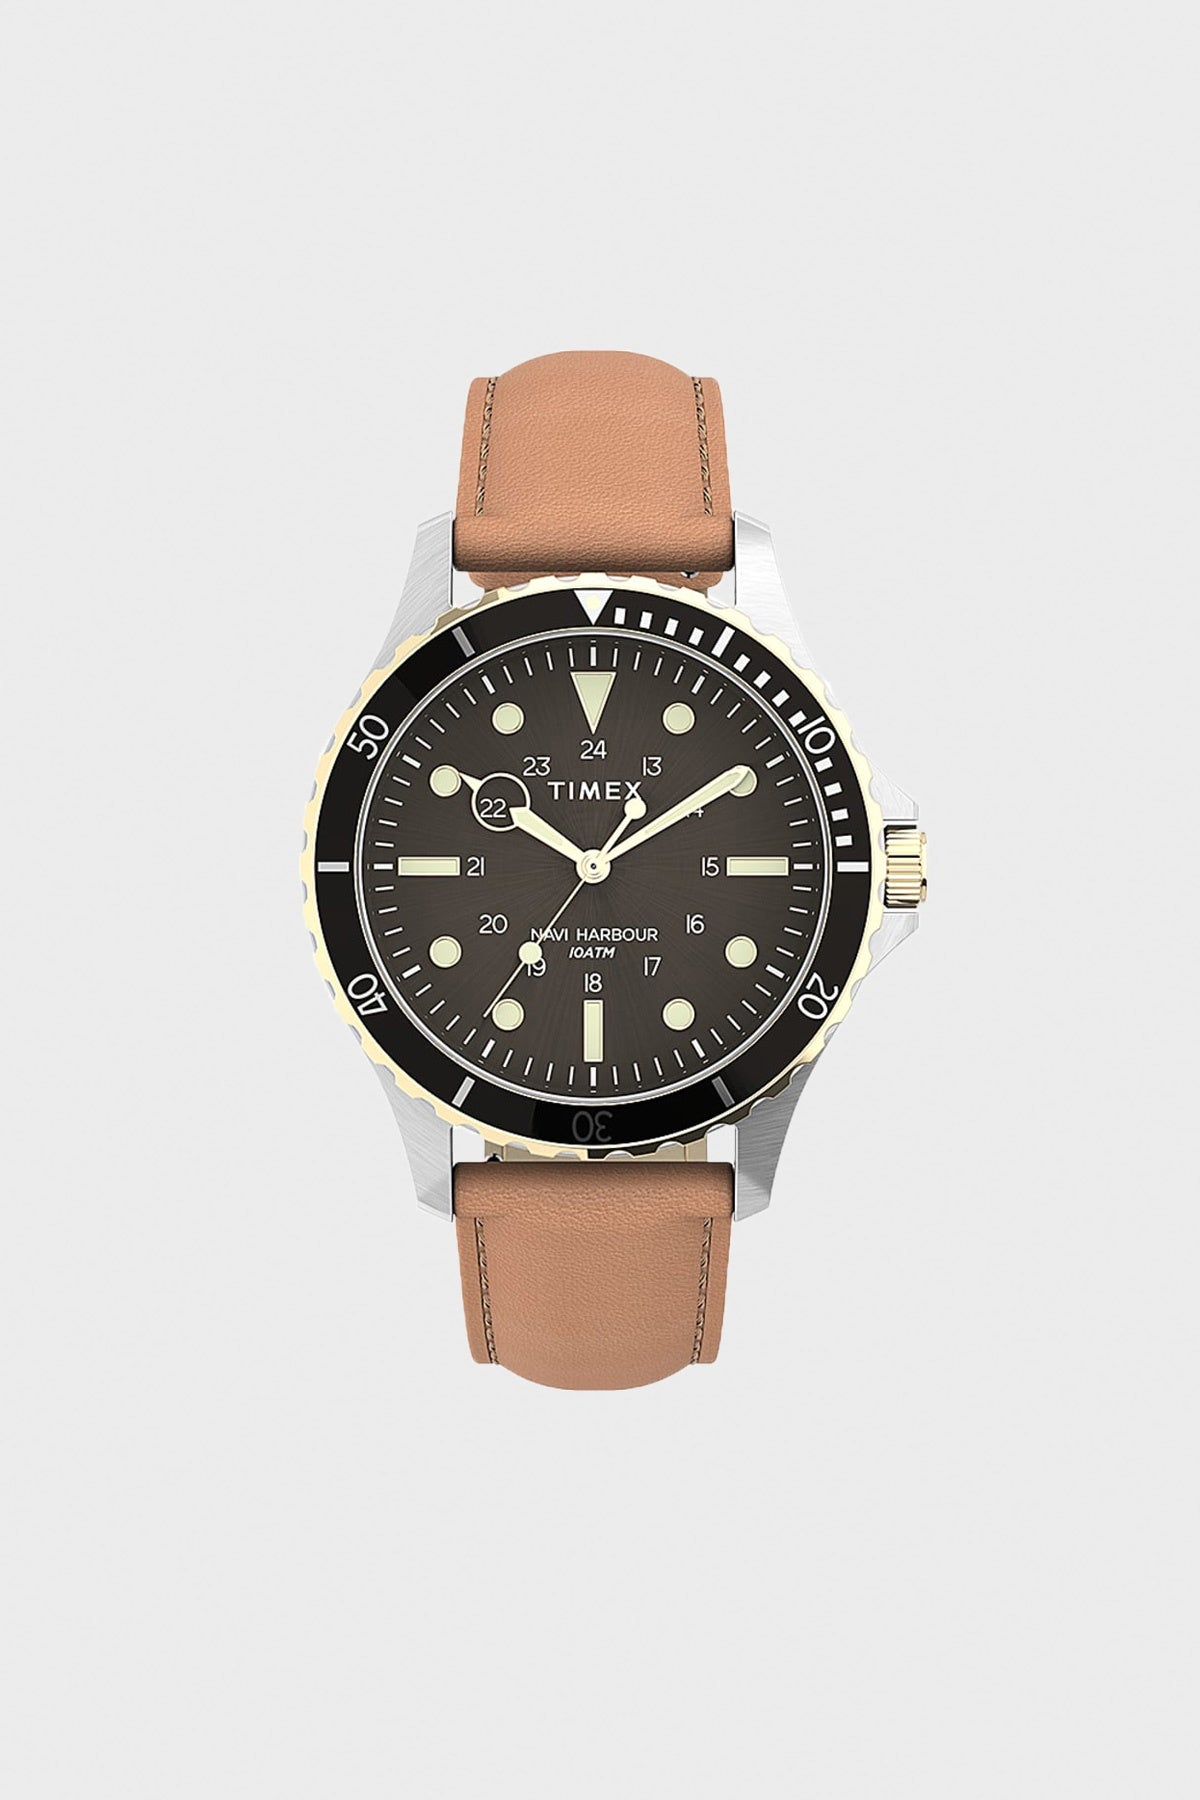 Timex - Navi XL Leather Strap Watch - Stainless/Tan/Black - Canoe Club